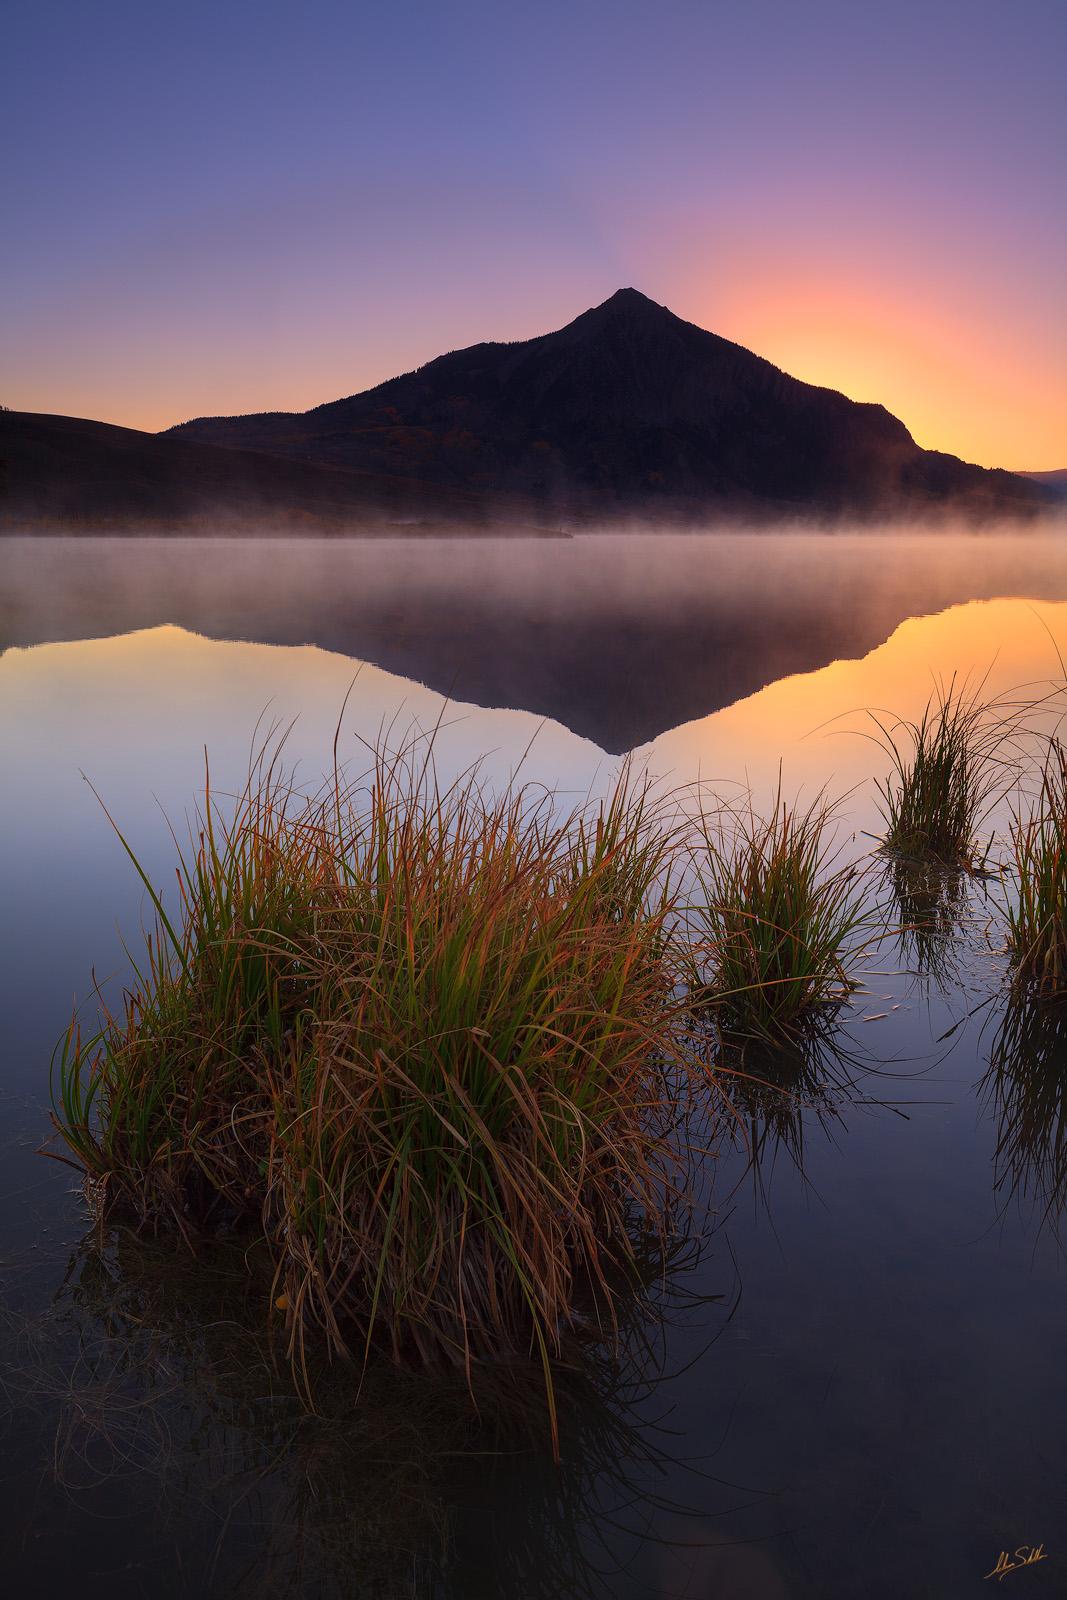 Autumn, CO, Colorado, Crested Butte, Fall, Fall Color, Fog, Lake, Mount Crested Butte, Peanut Lake, Reflection, Rocky Mountains, Sunrise, Water, grass, grasses, photo